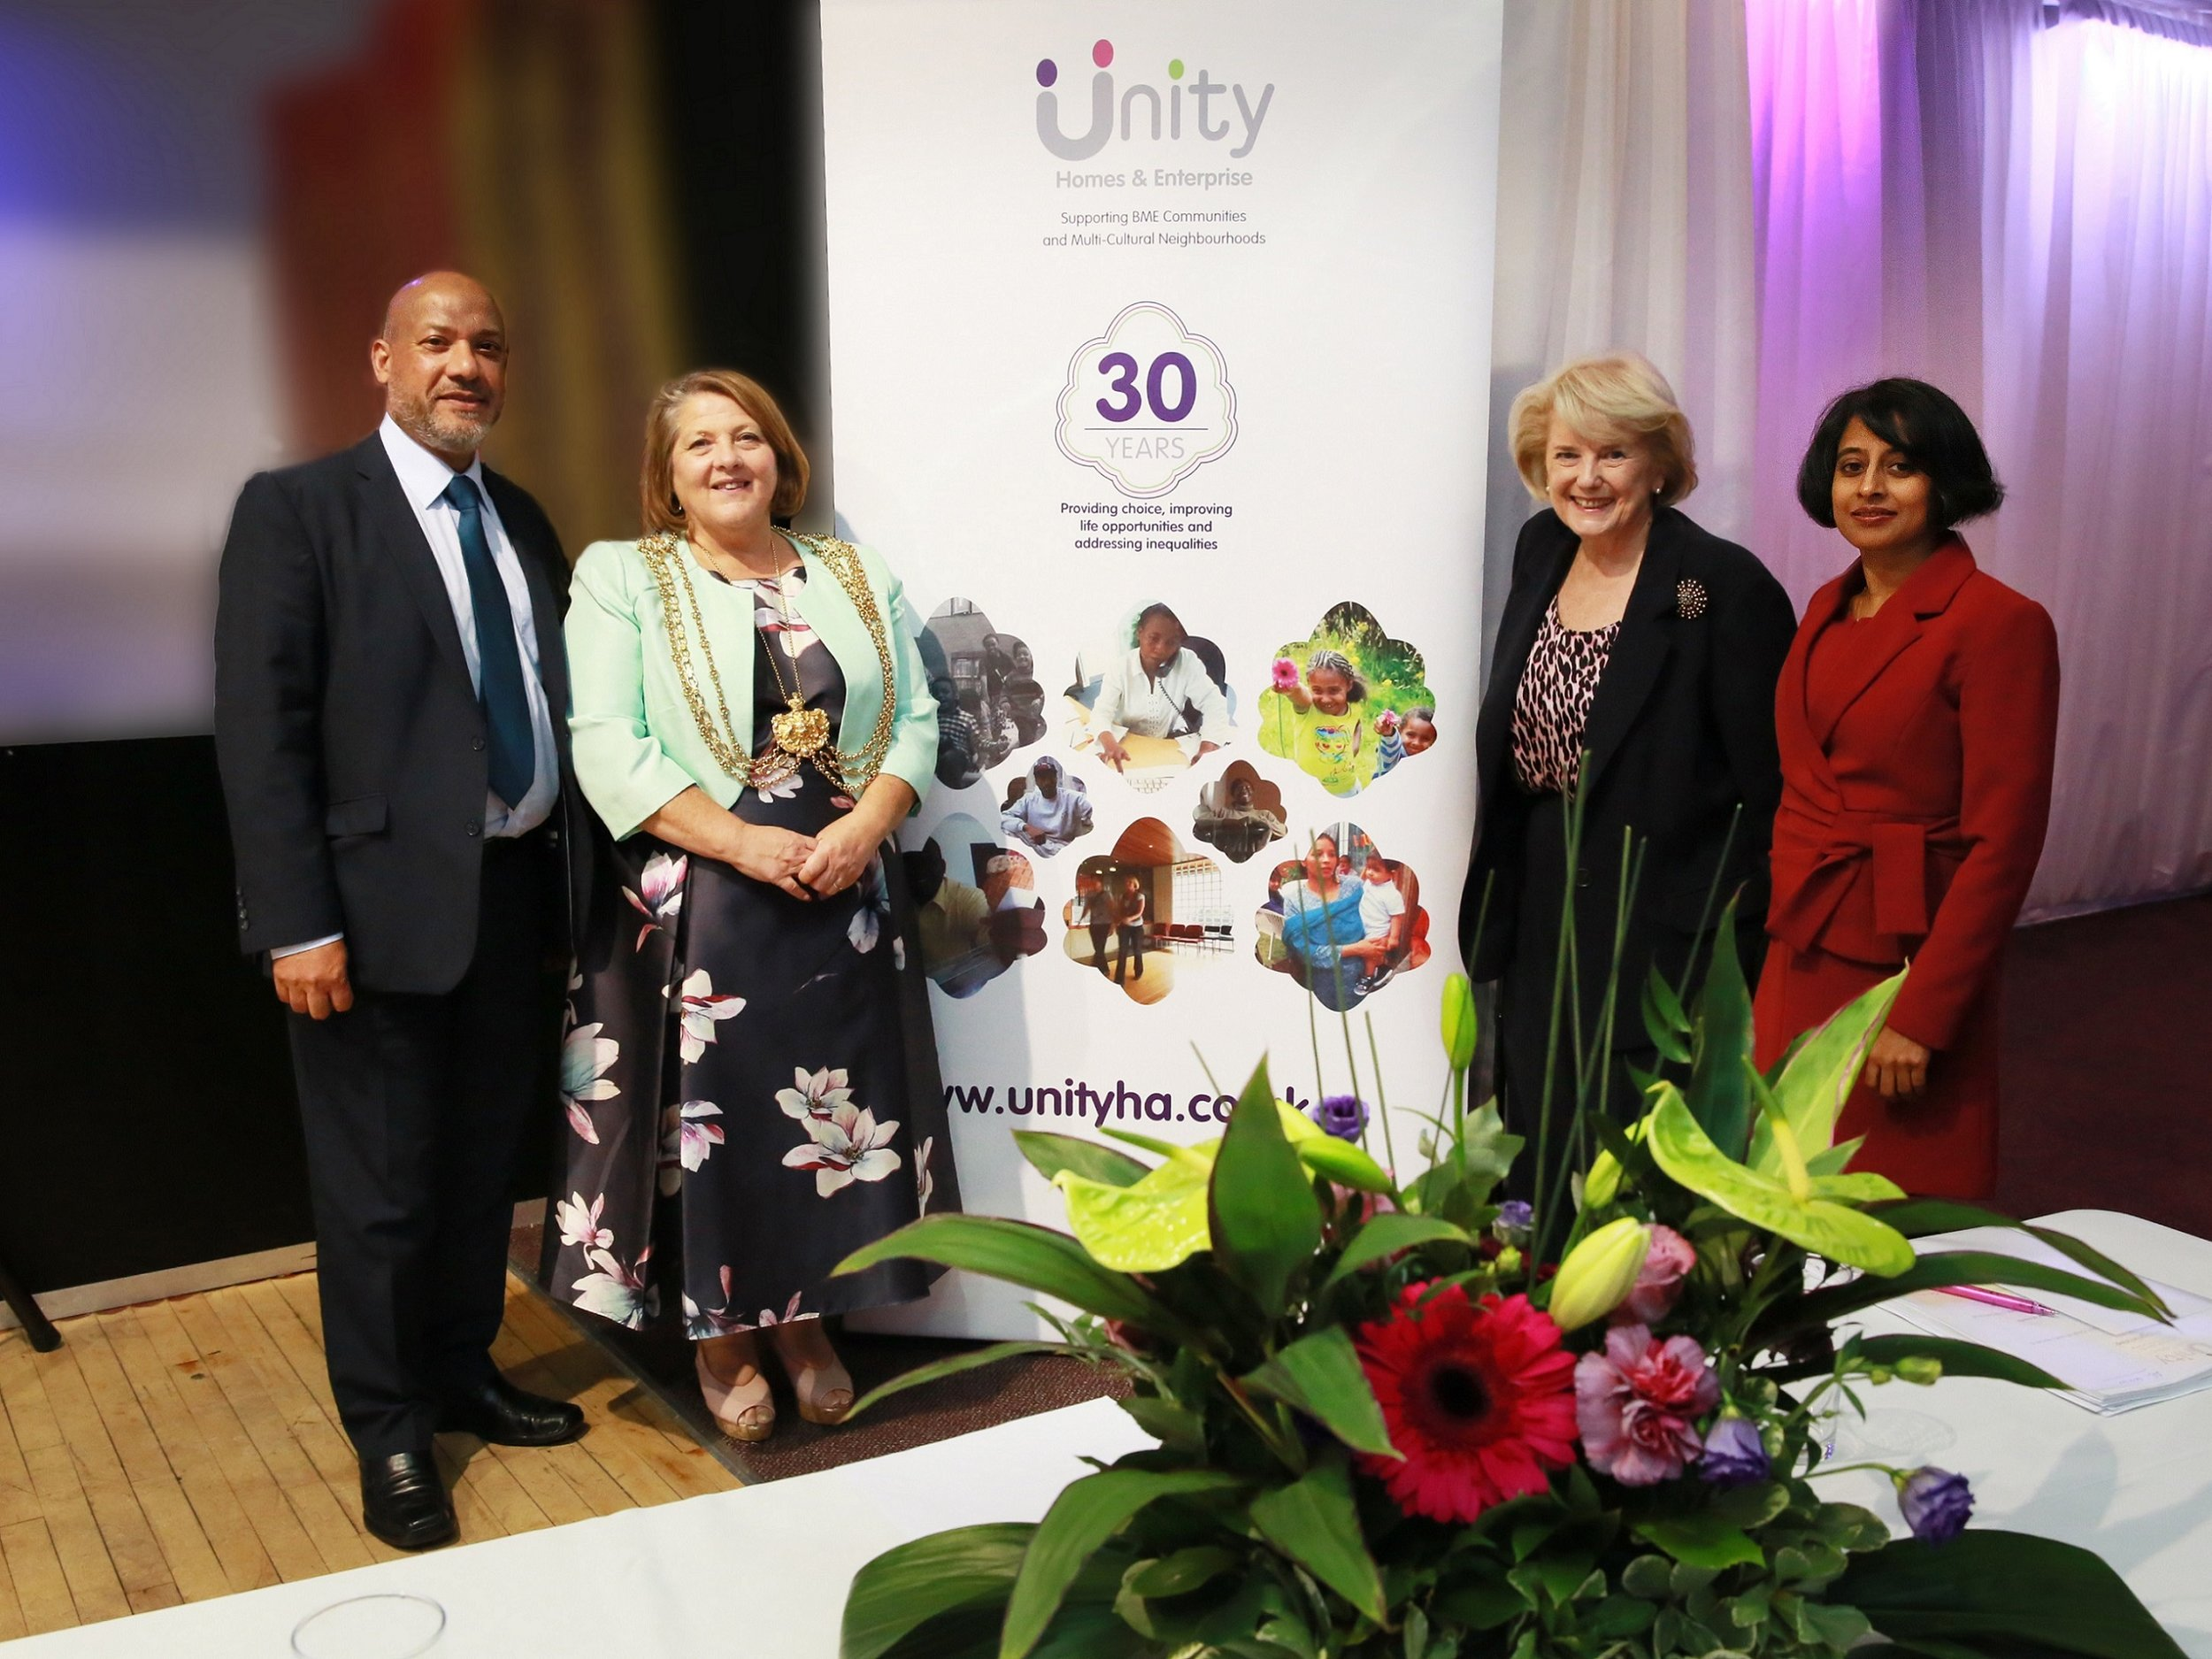 From left to right: Ali Akbor (Unity chief executive), Councillor Jane Dowson (Lord Mayor of Leeds), Baroness Dean (former Housing Corporation chair)and Shruti Bhargava (Unity chair)